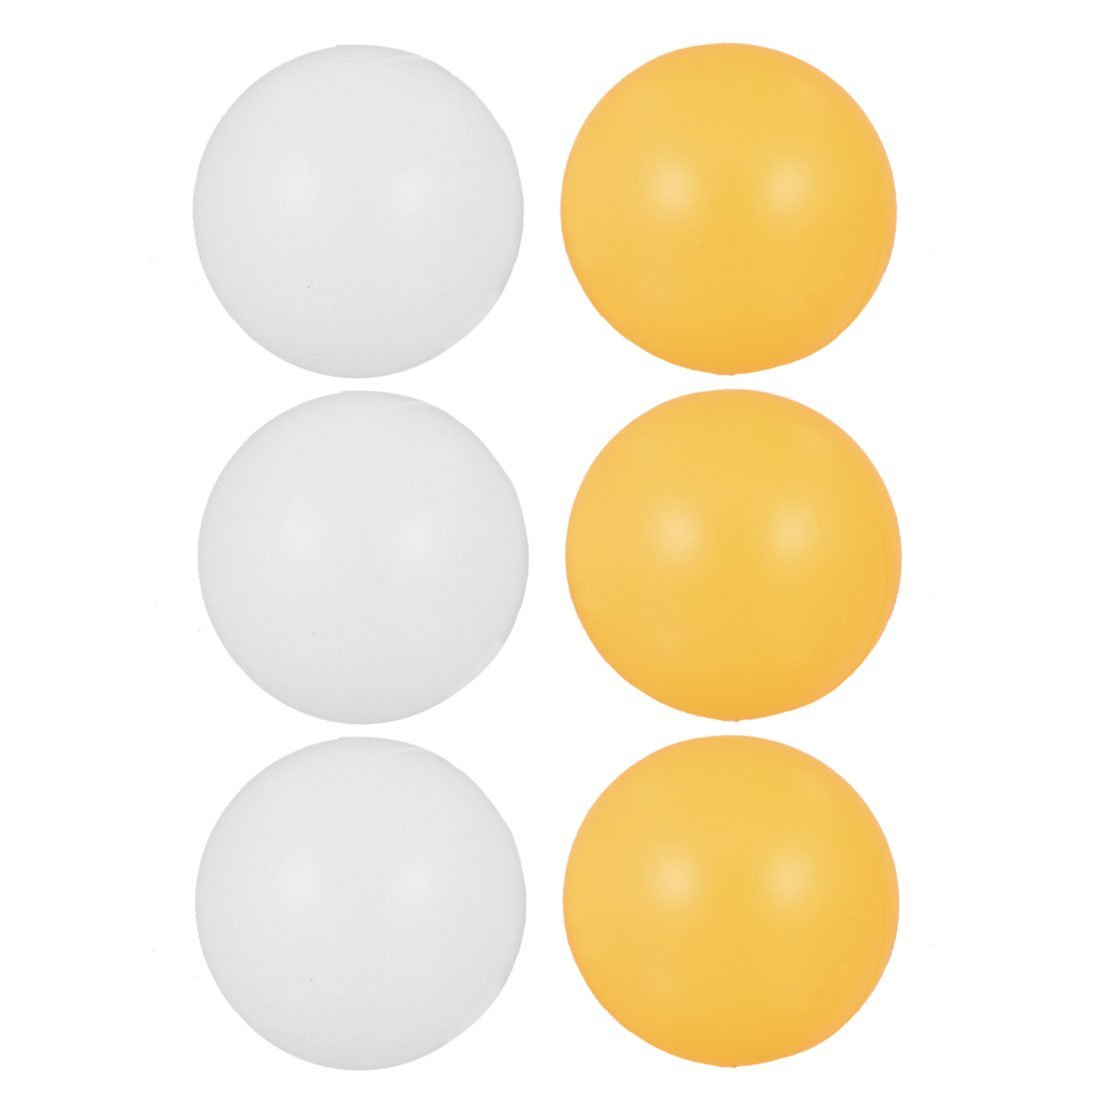 SODIAL(R) Blanc Orange 39mm Dia Sport Tennis de Table Balles de Ping Pong 6 Pcs